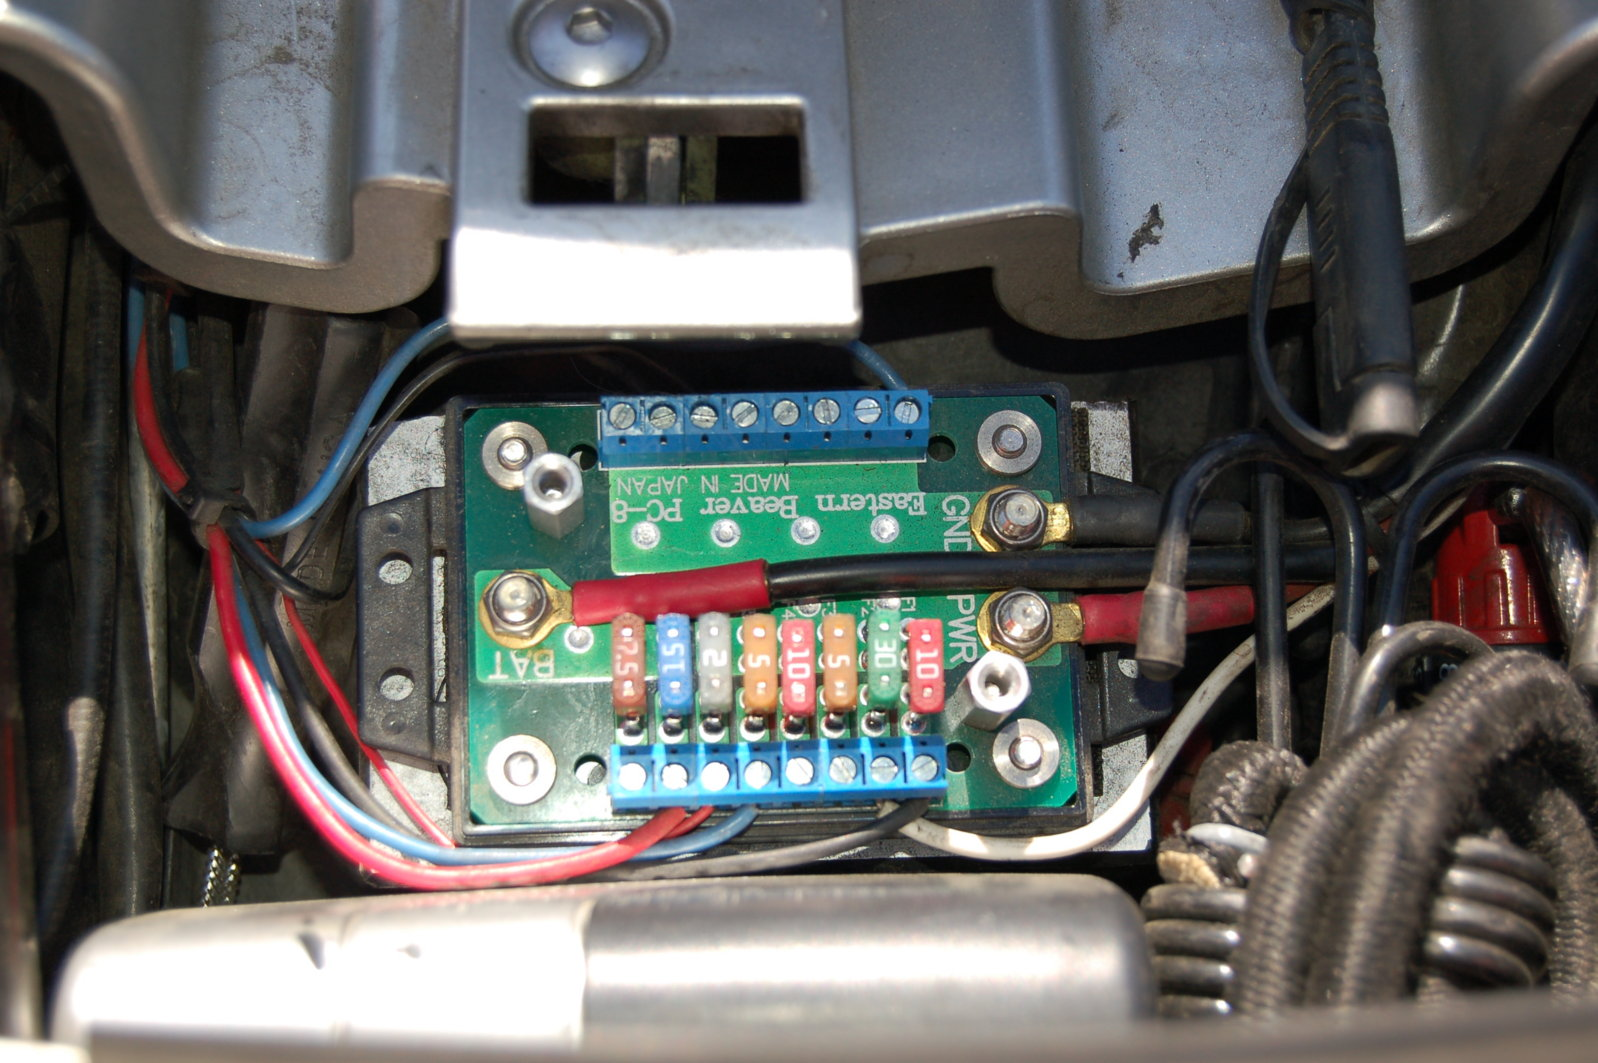 My Fuse Box Got Wet : Wiring auxiliary items so i don t kill battery south bay